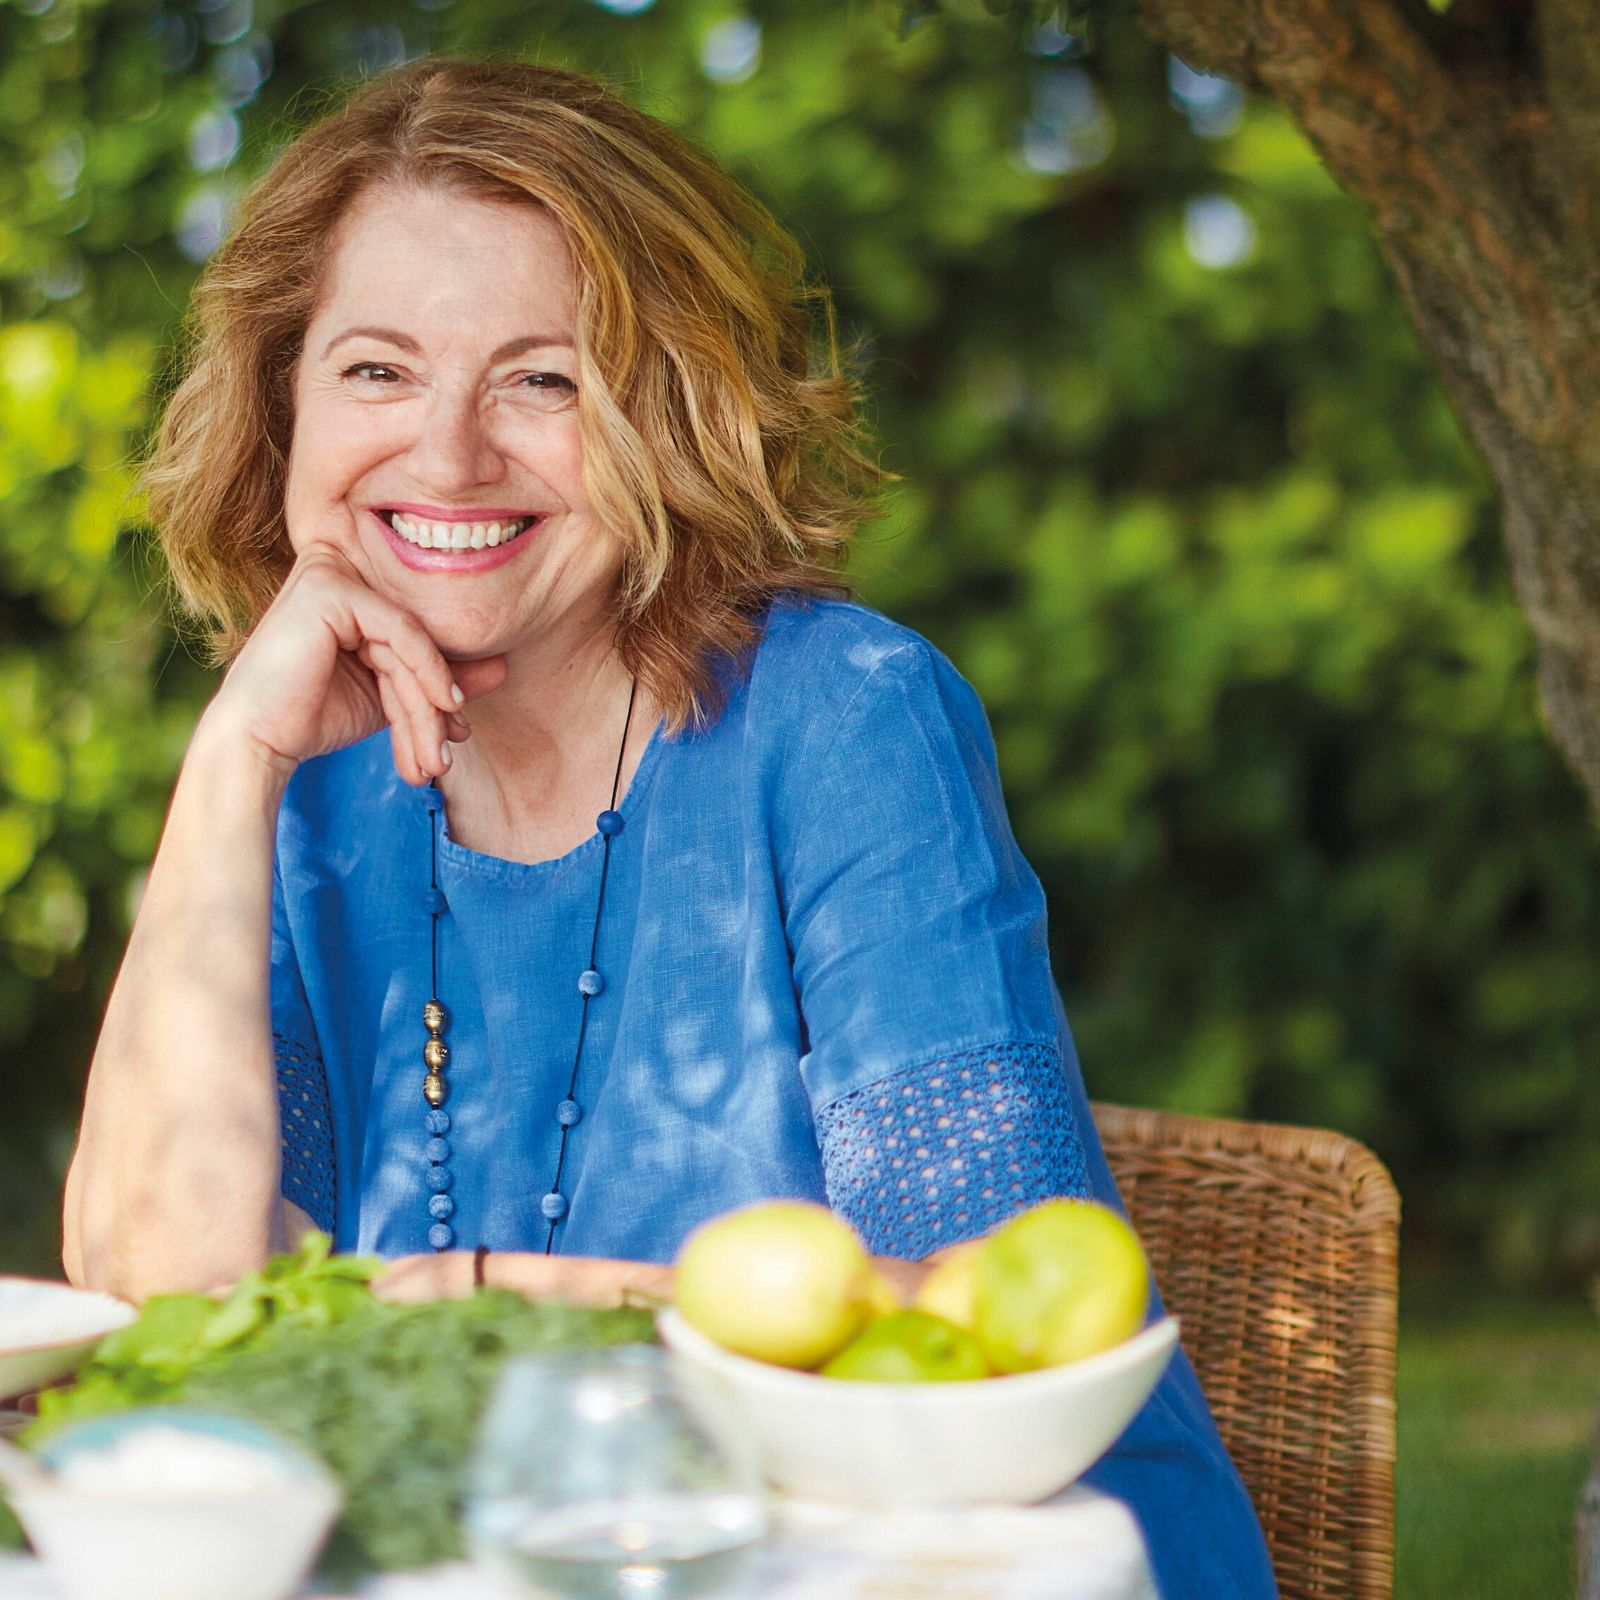 Crete-born, Cumbria-based Irini won Masterchef in 2019. Her first book, Under the Olive Tree: Recipes from my Greek ...